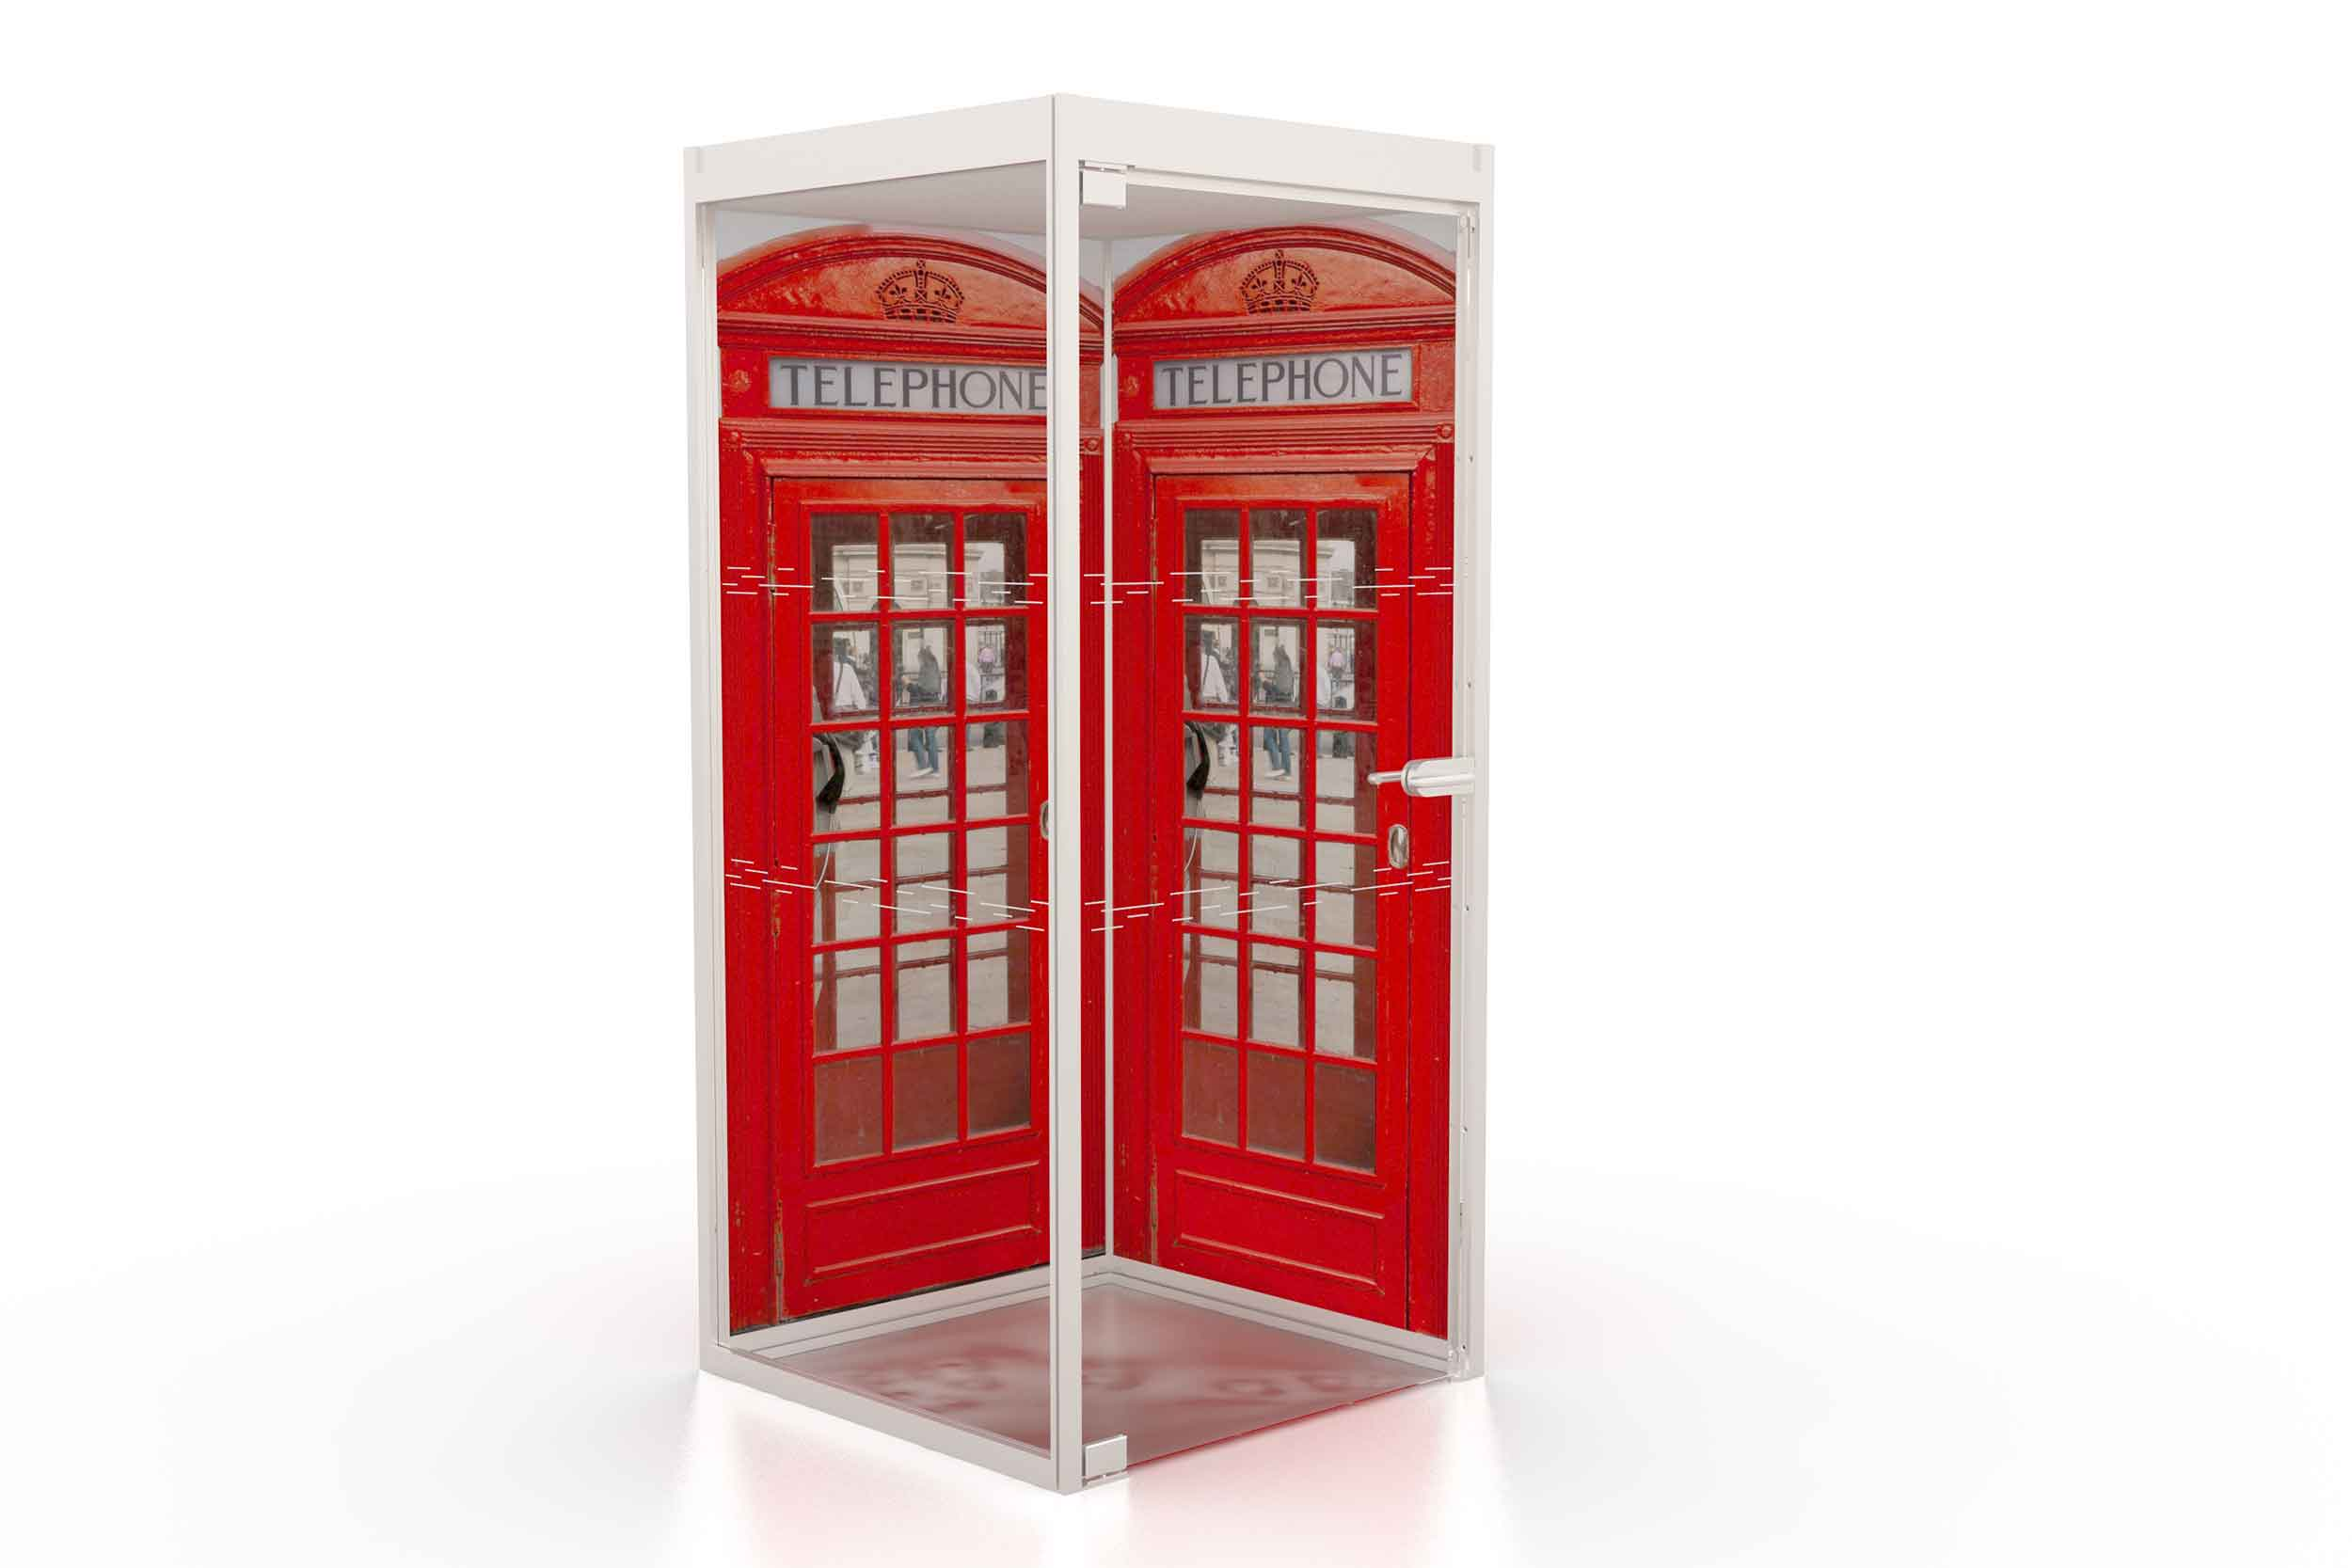 T3 Telephone booth boss red telephone box print